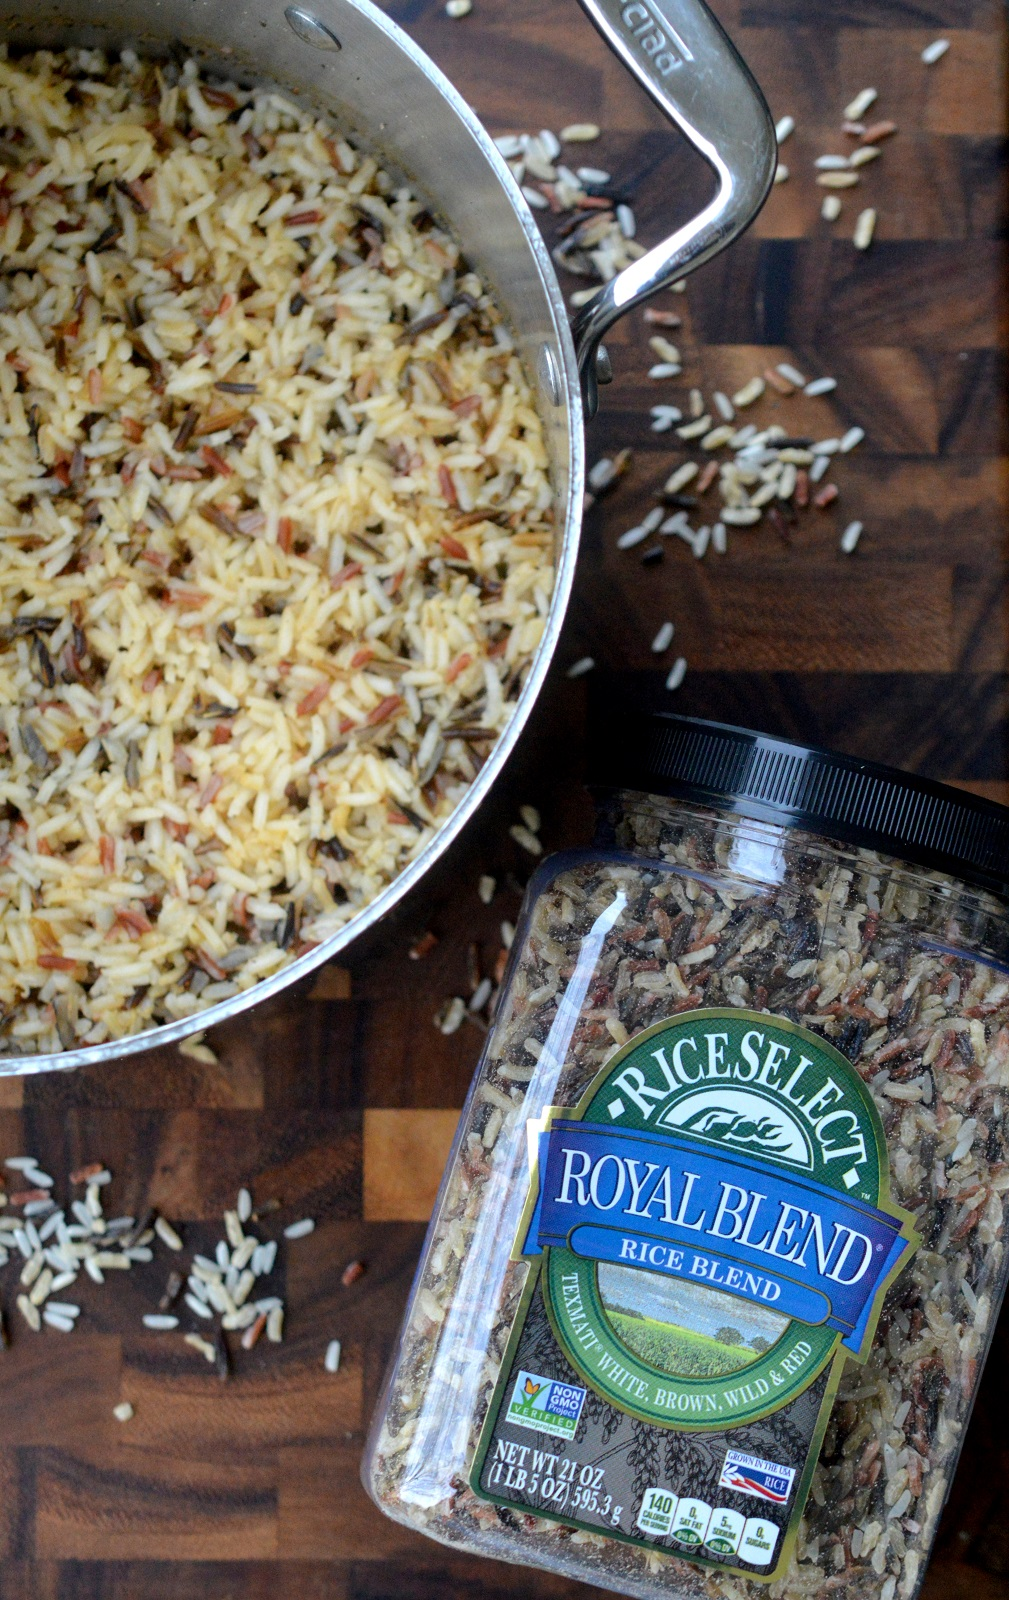 Rice Select Royal Blend Rice Roasted Vegetable Rice